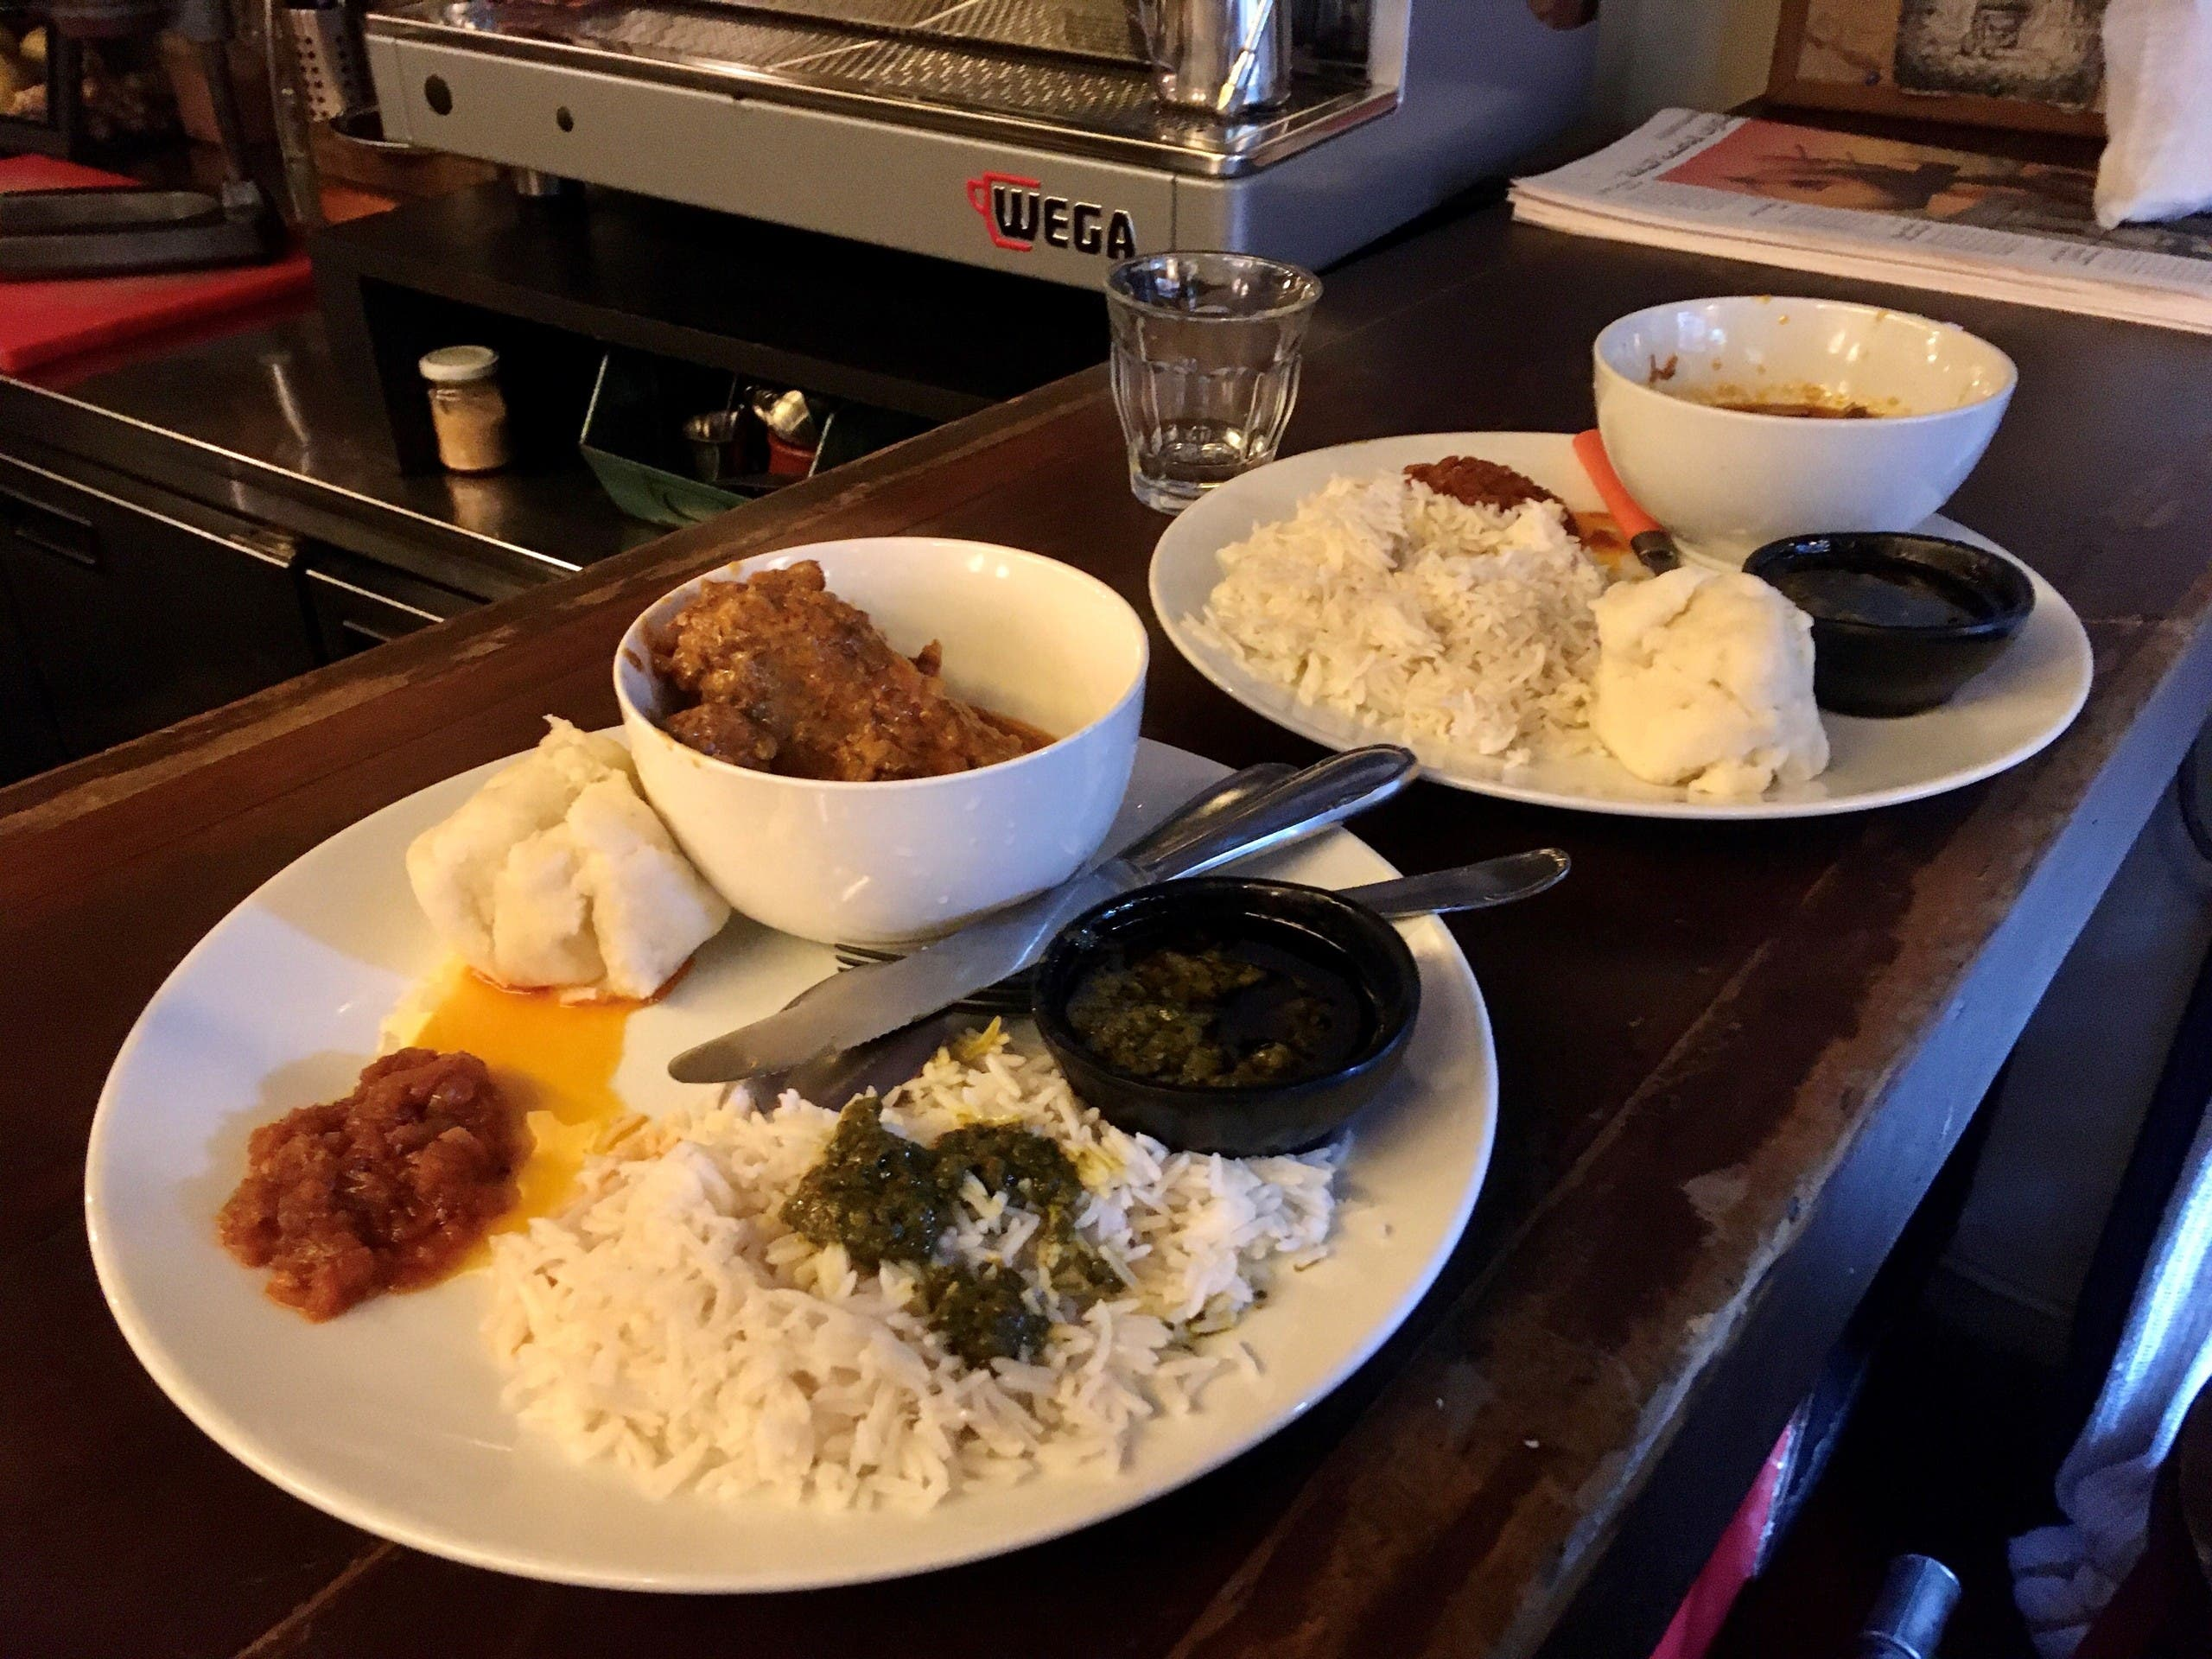 Chef Mariam Sesay's menu consisted of groundnut soup, cassava leaf, foo-foo, fried chicken and vegetable stewmenu consisted of groundnut soup, cassava leaf, foo-foo, fried chicken and vegetable stew. (Image: Robert McKelvey)